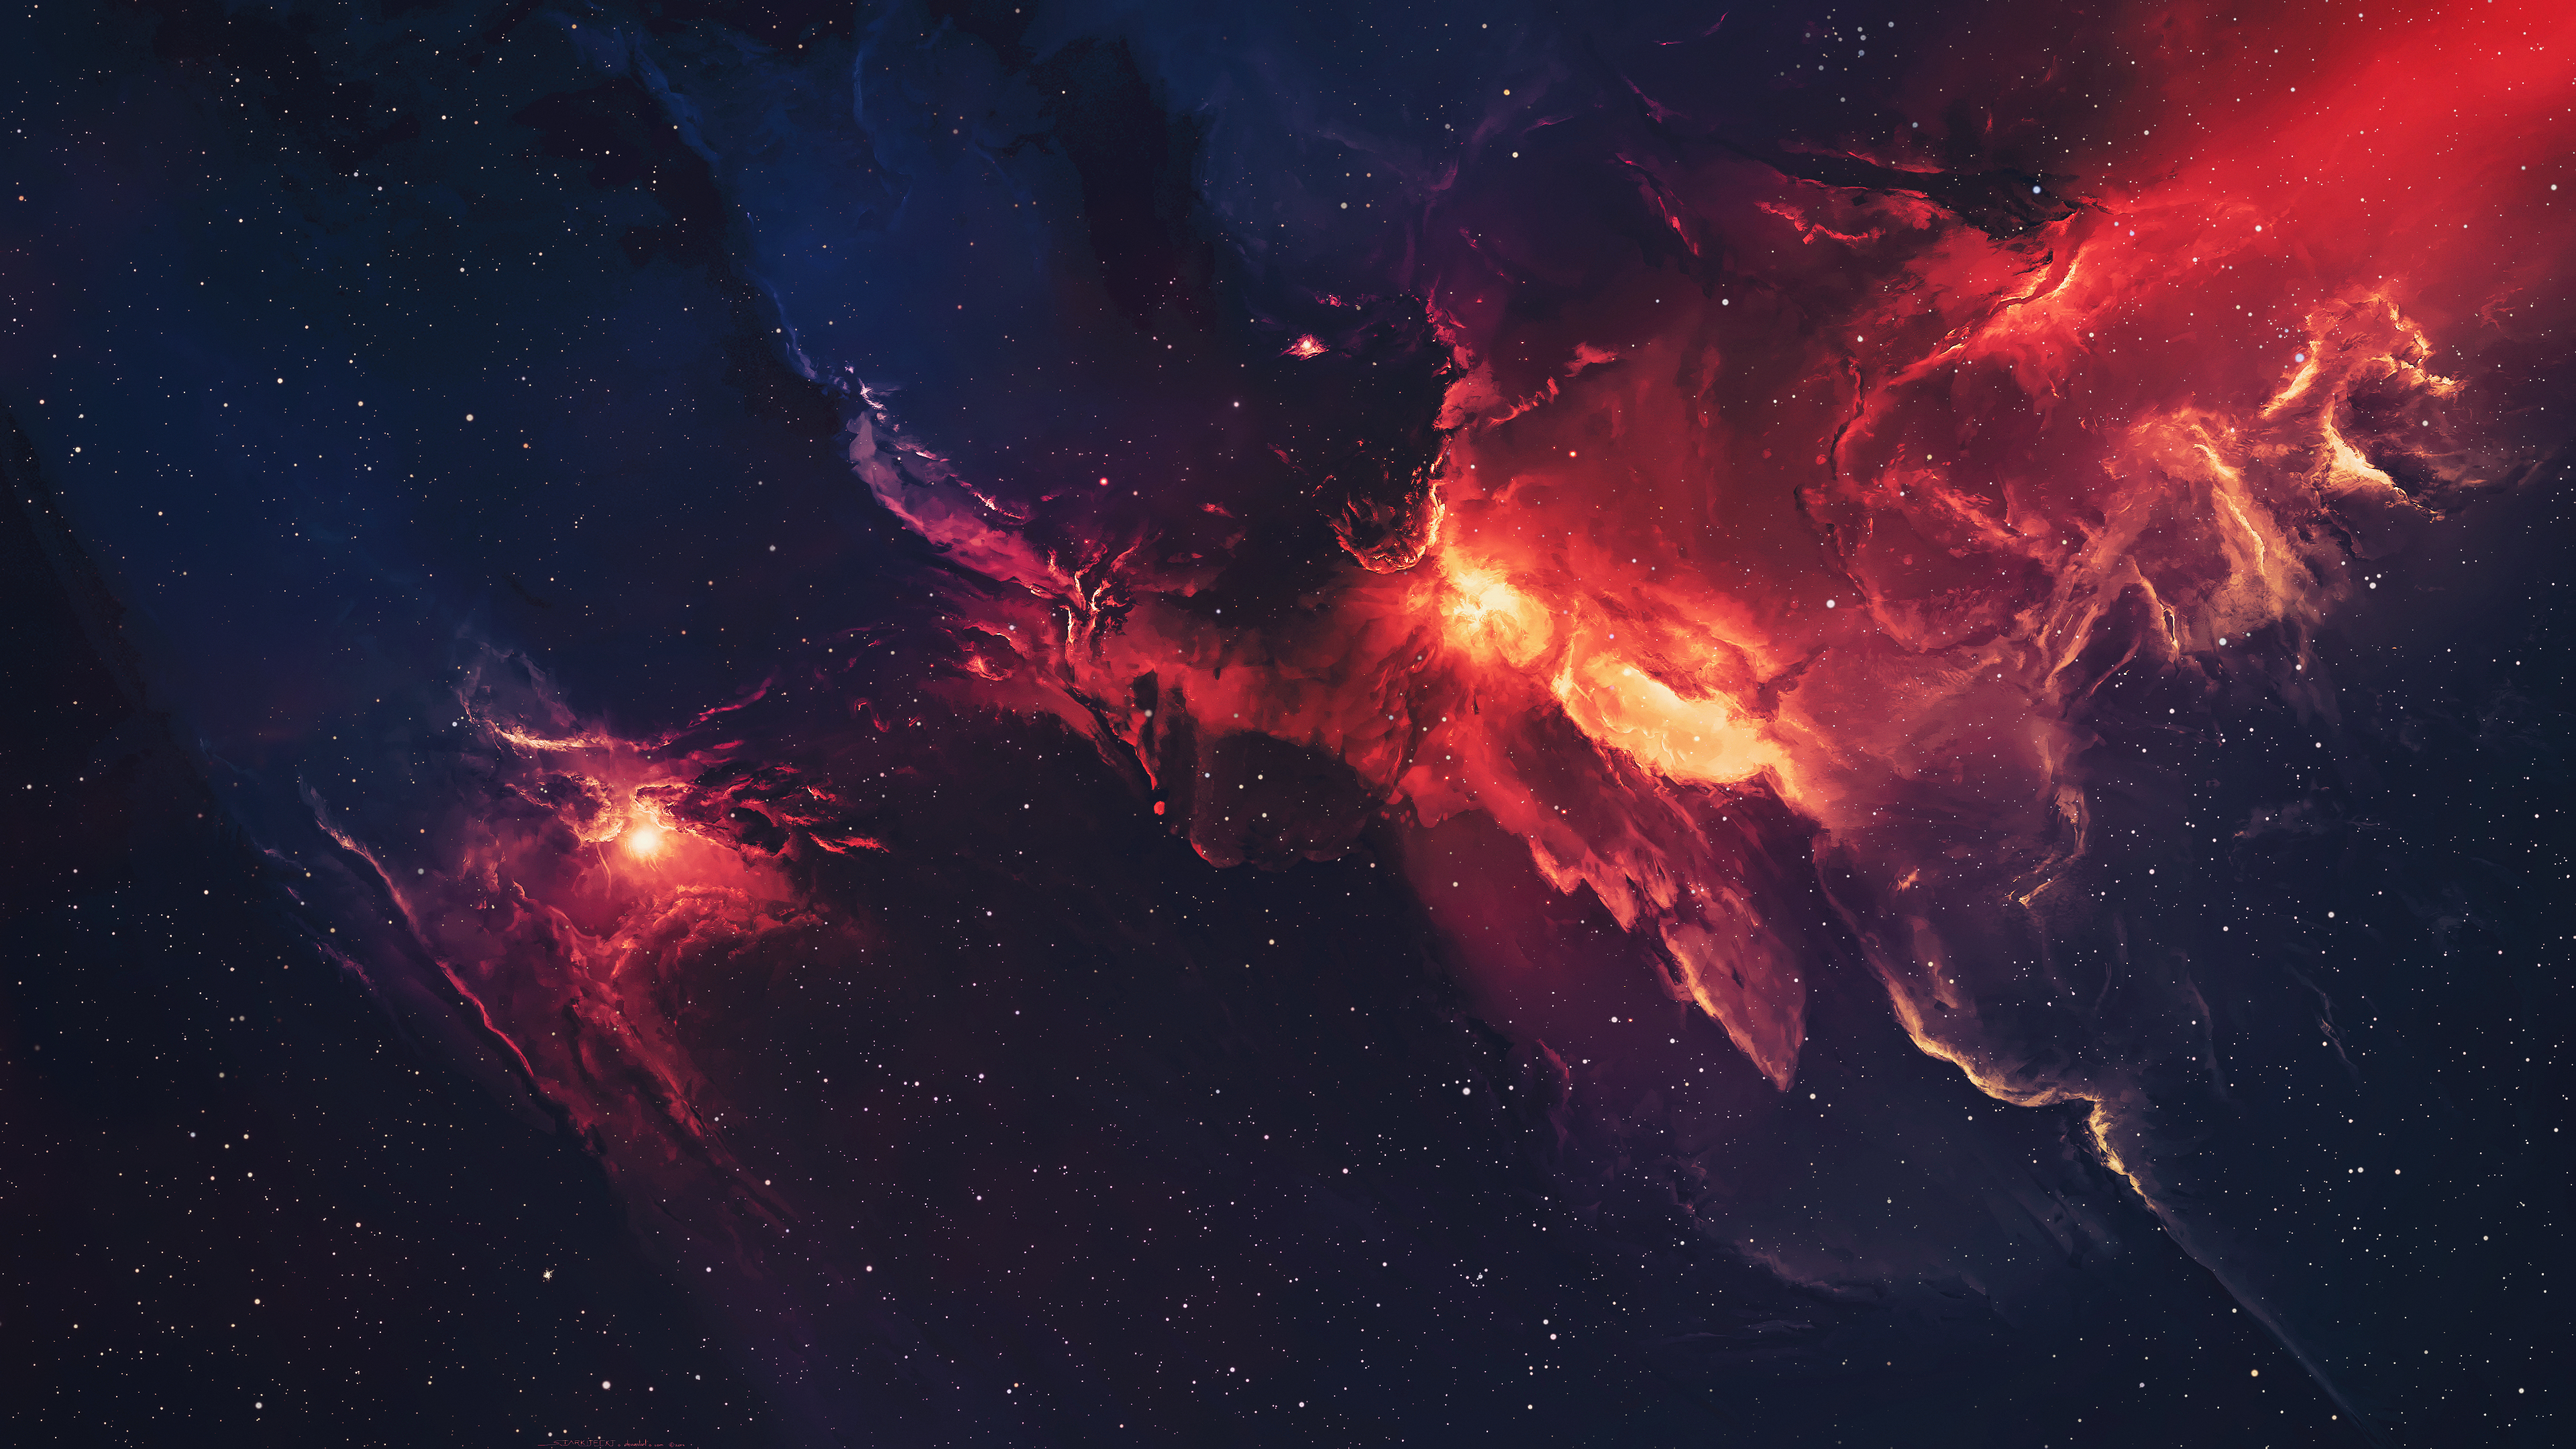 General 3840x2160 galaxy space stars universe spacescapes nebula red